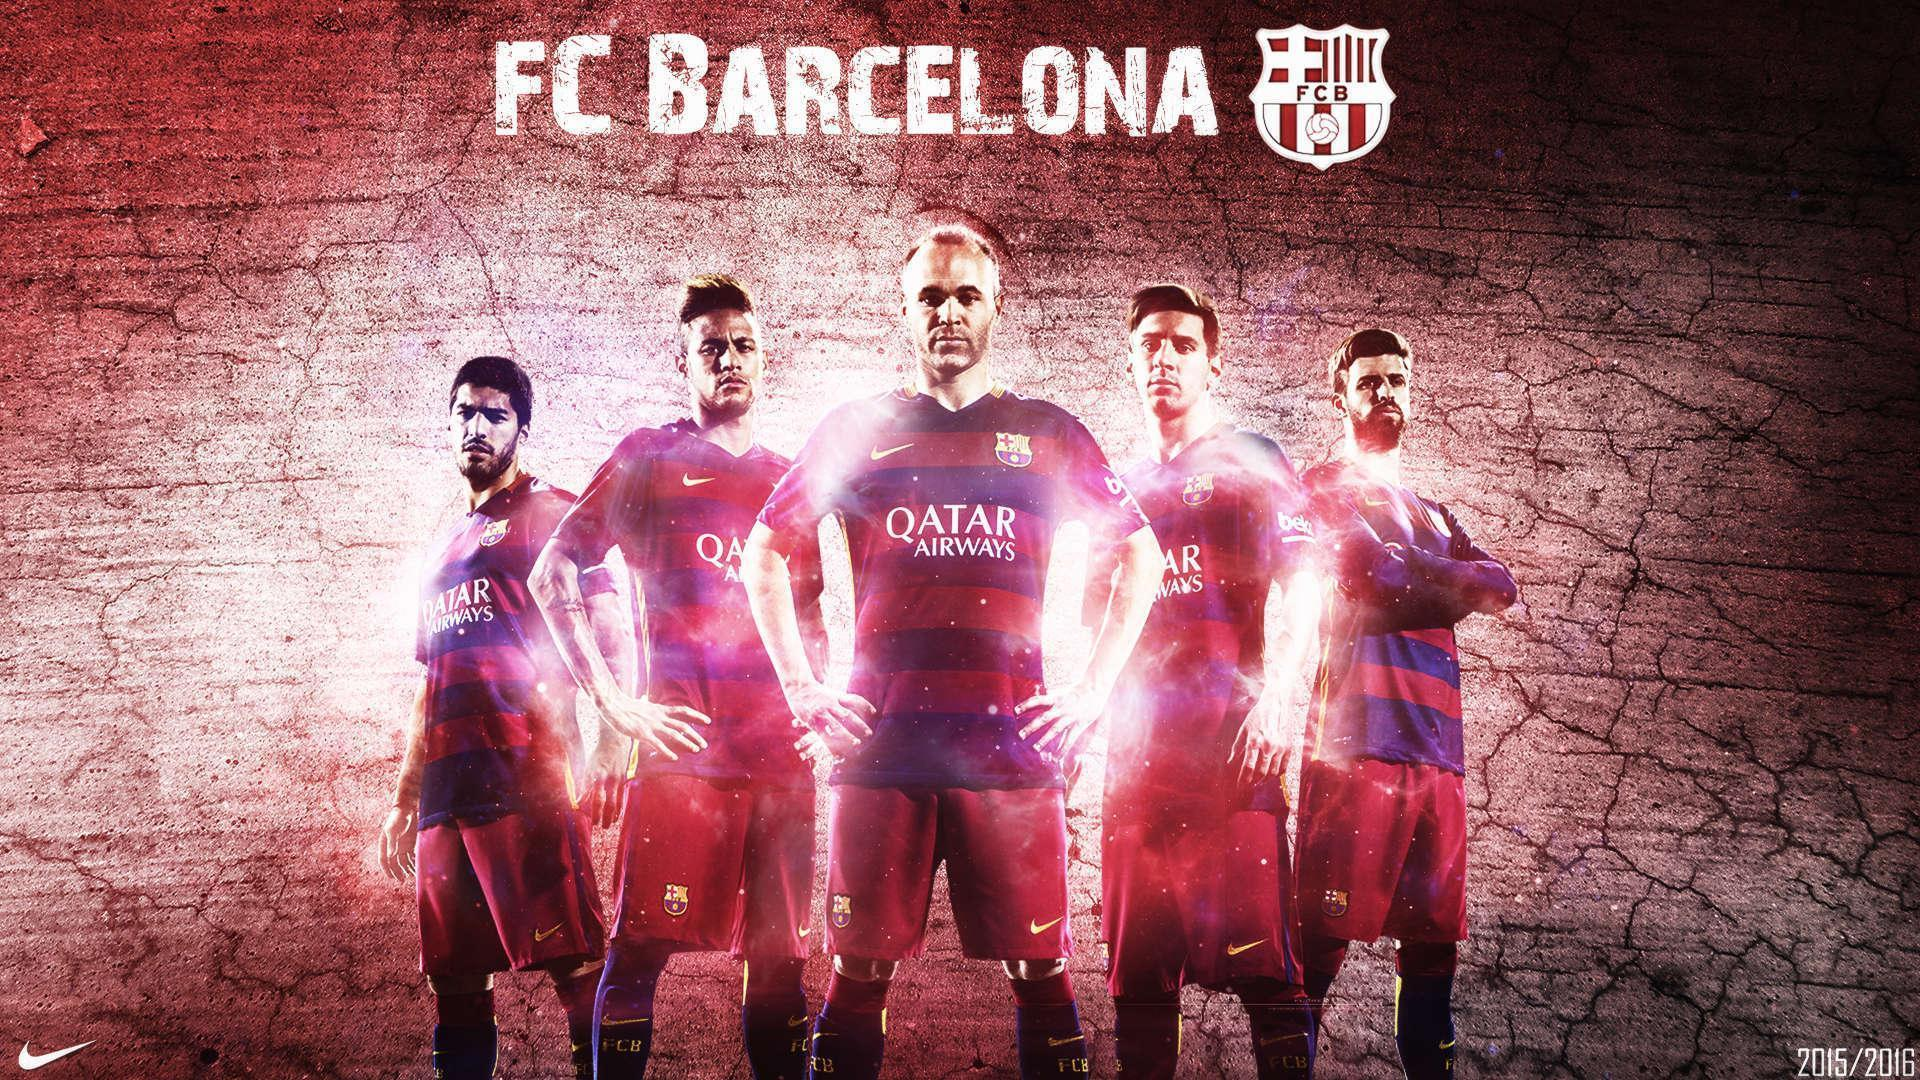 Fcb HD Wallpapers 2016 1920x1080